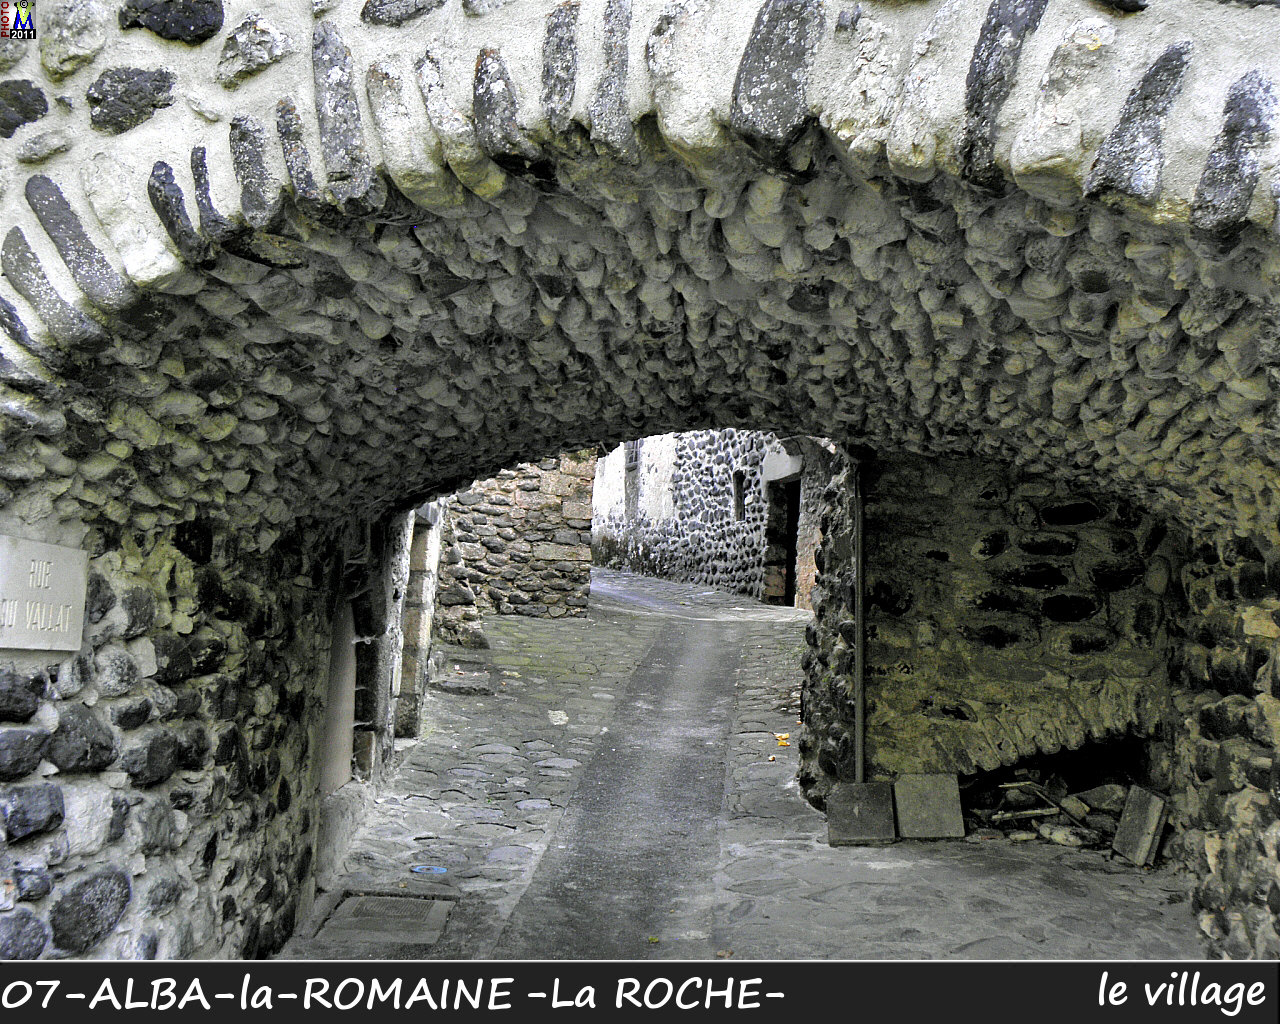 07ALBA-ROMAINEzROCHE_village_124.jpg